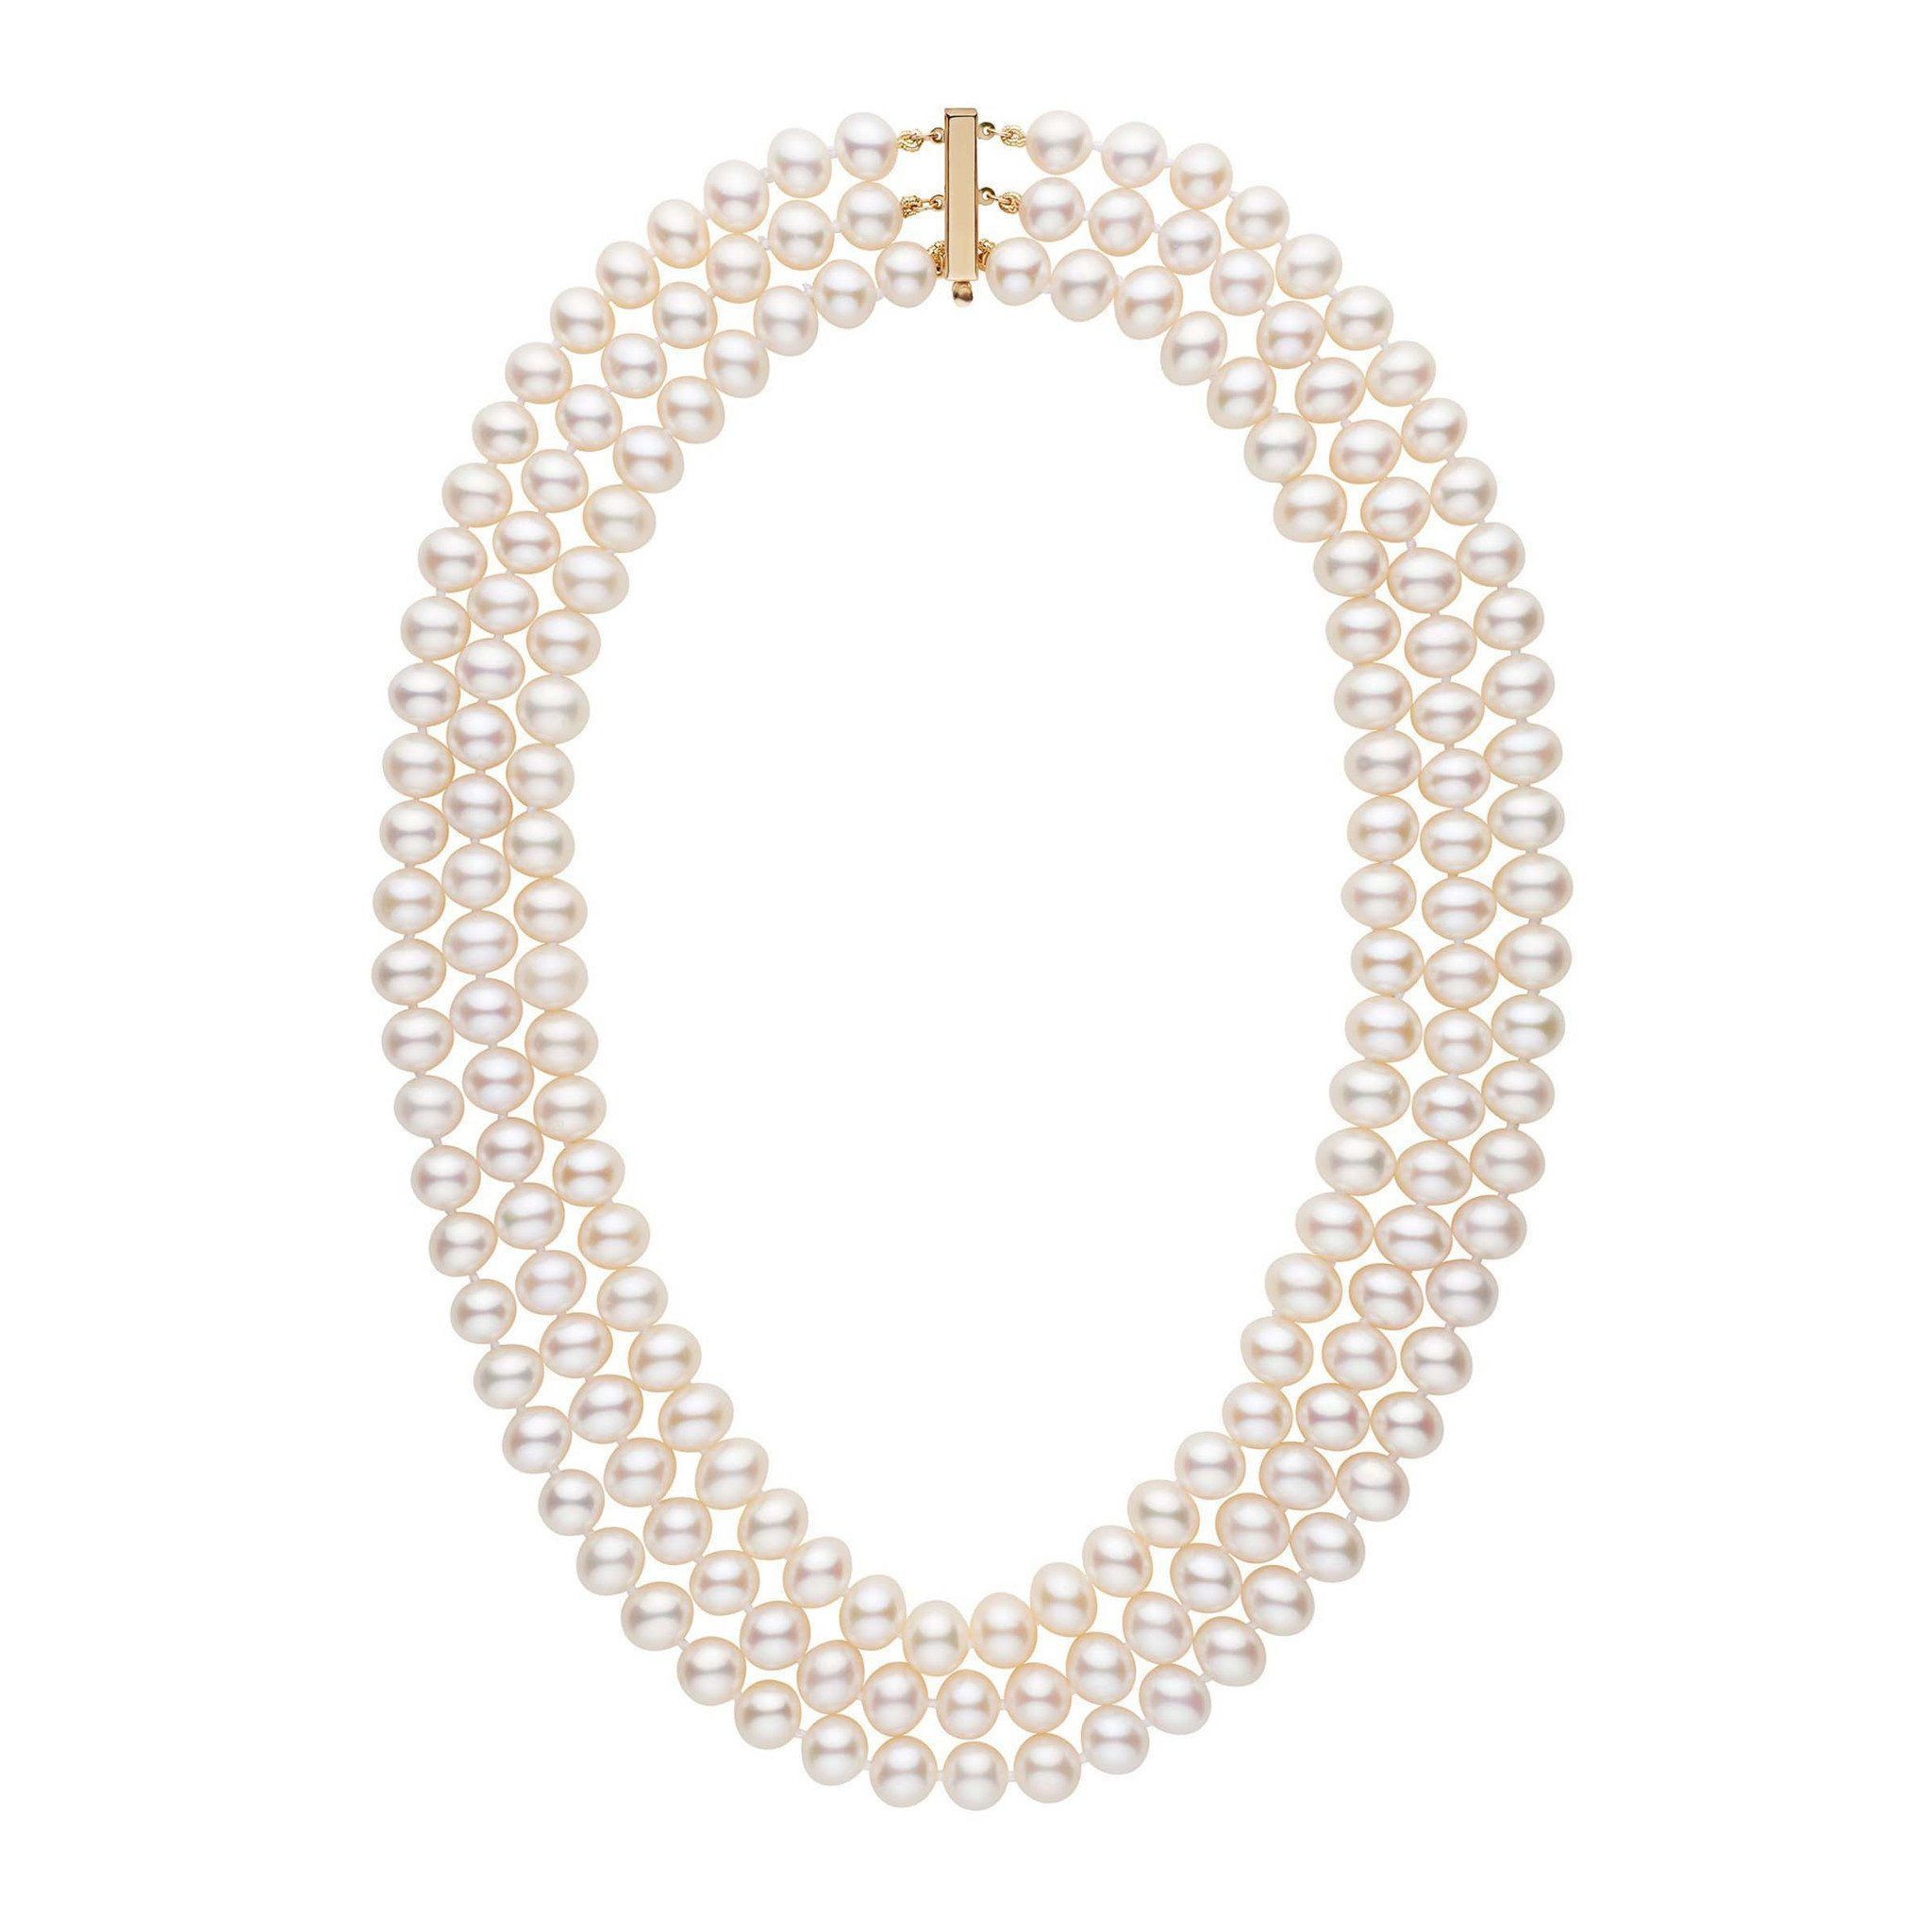 Triple Strand 8.5-9.0 mm AA+ White Freshwater Pearl Necklace